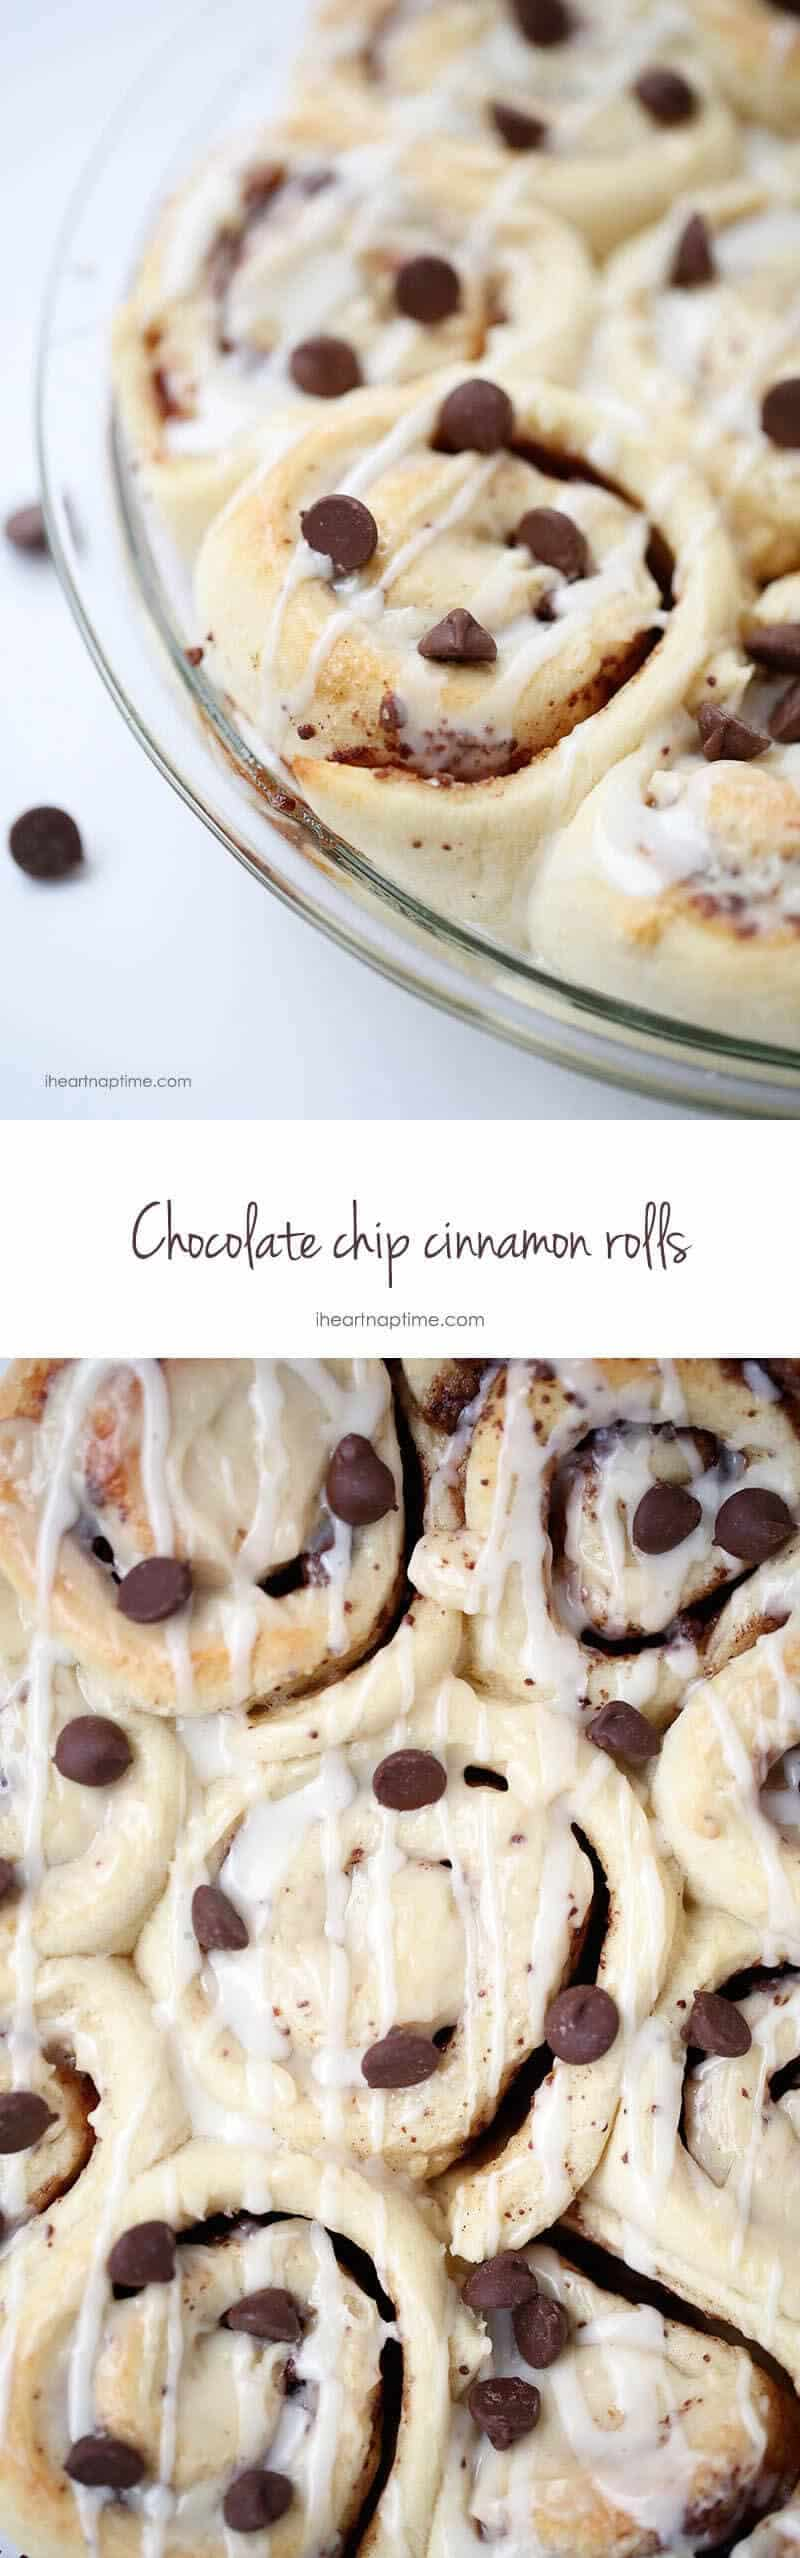 chocolate chip cinnamon rolls collage